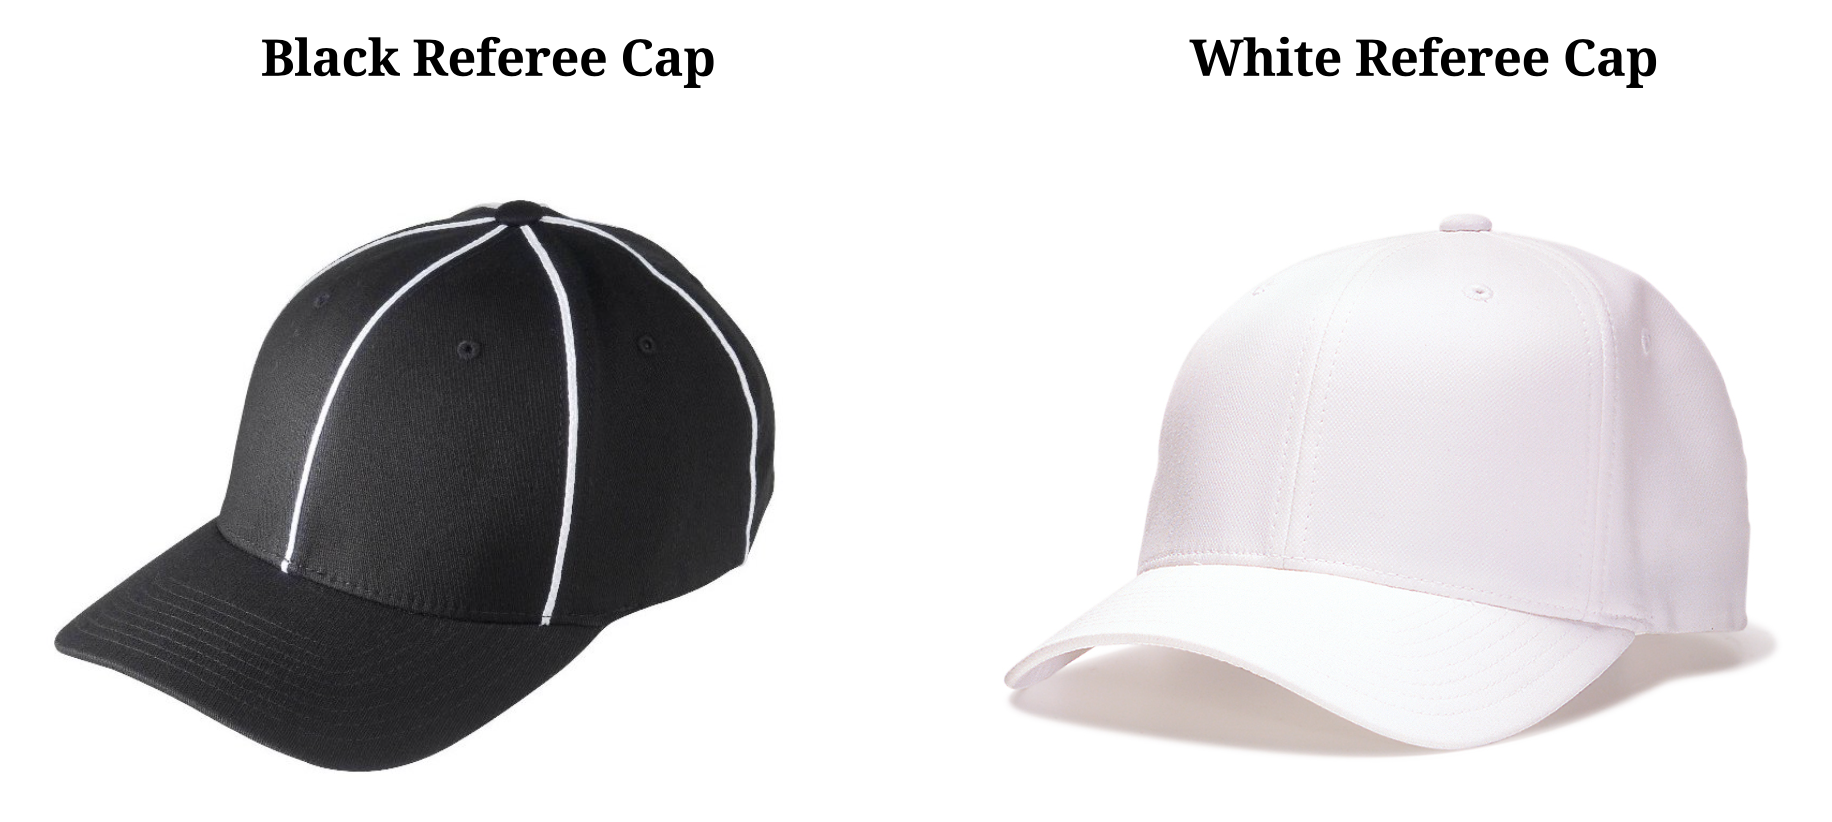 fc7c7ffde1dce The black referee cap should be worn by each official during every game.  The white referee cap should only worn by the Referee during Varsity games.